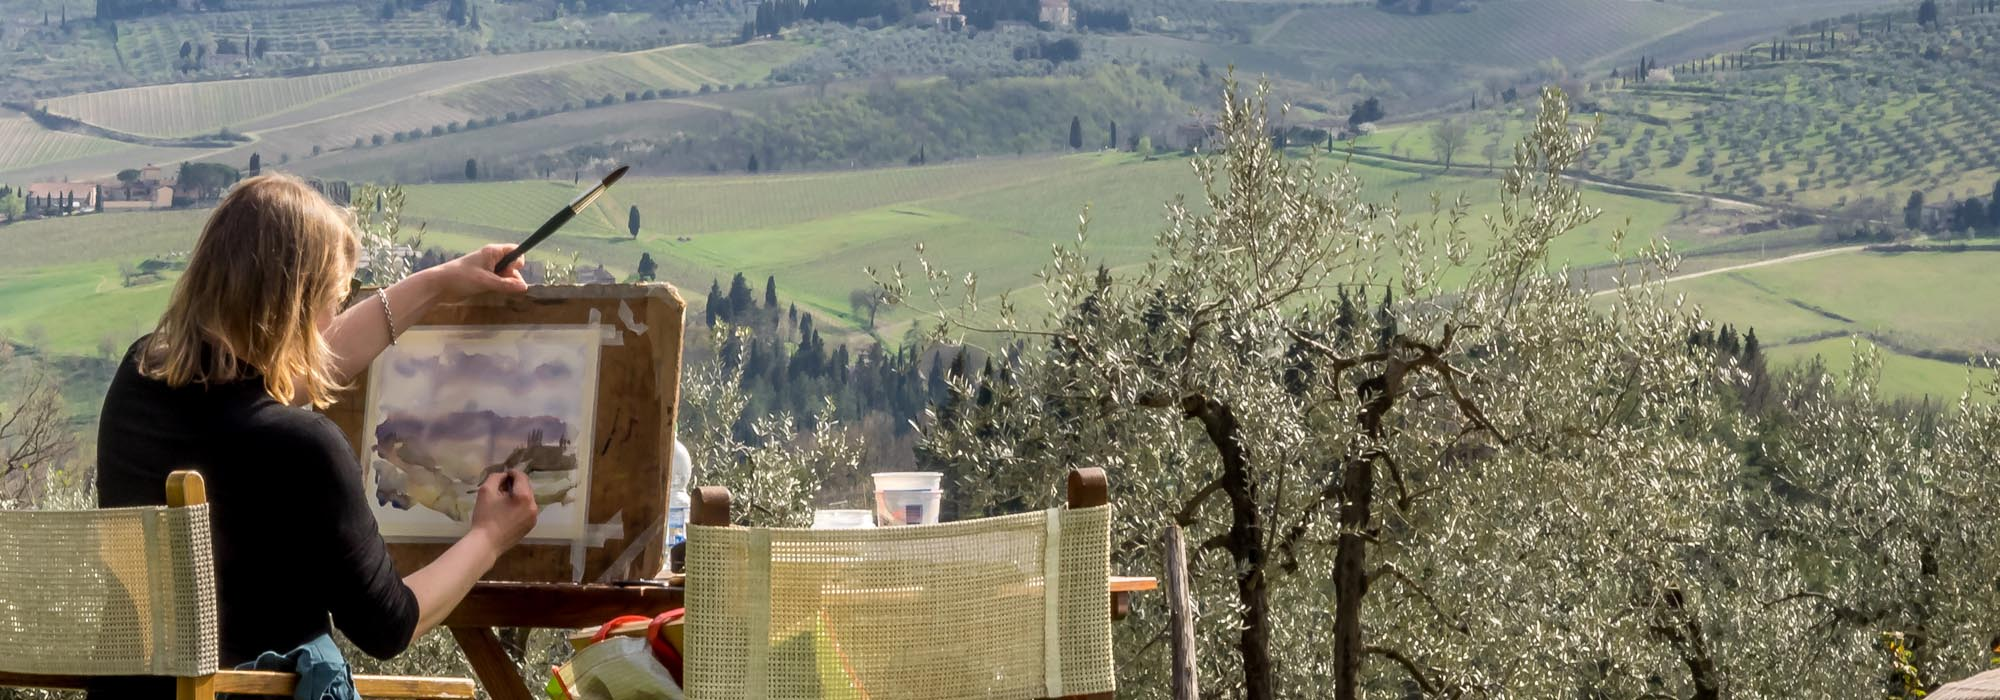 Experience food & wine, art, yoga and more in Tuscany